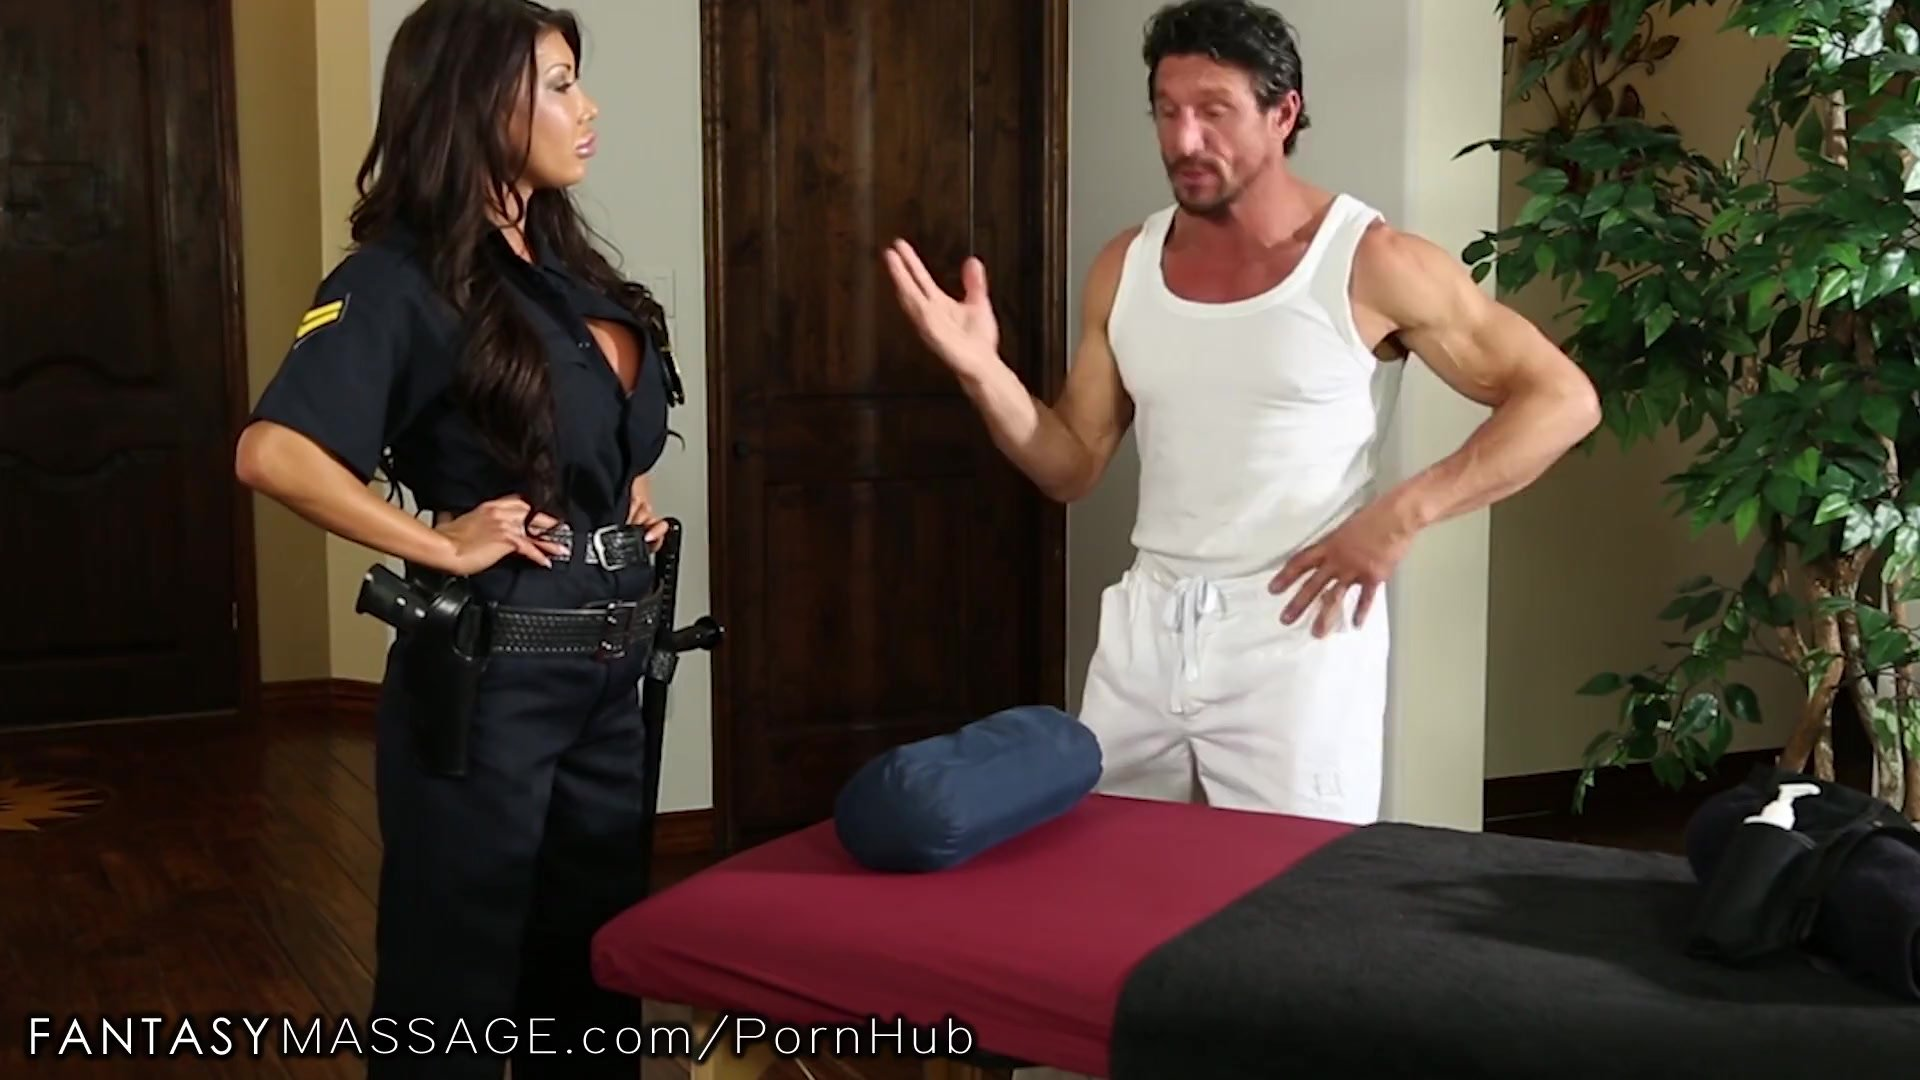 FantasyMassage Officer August Taylor Shows Up At Tommy Gunn's Place